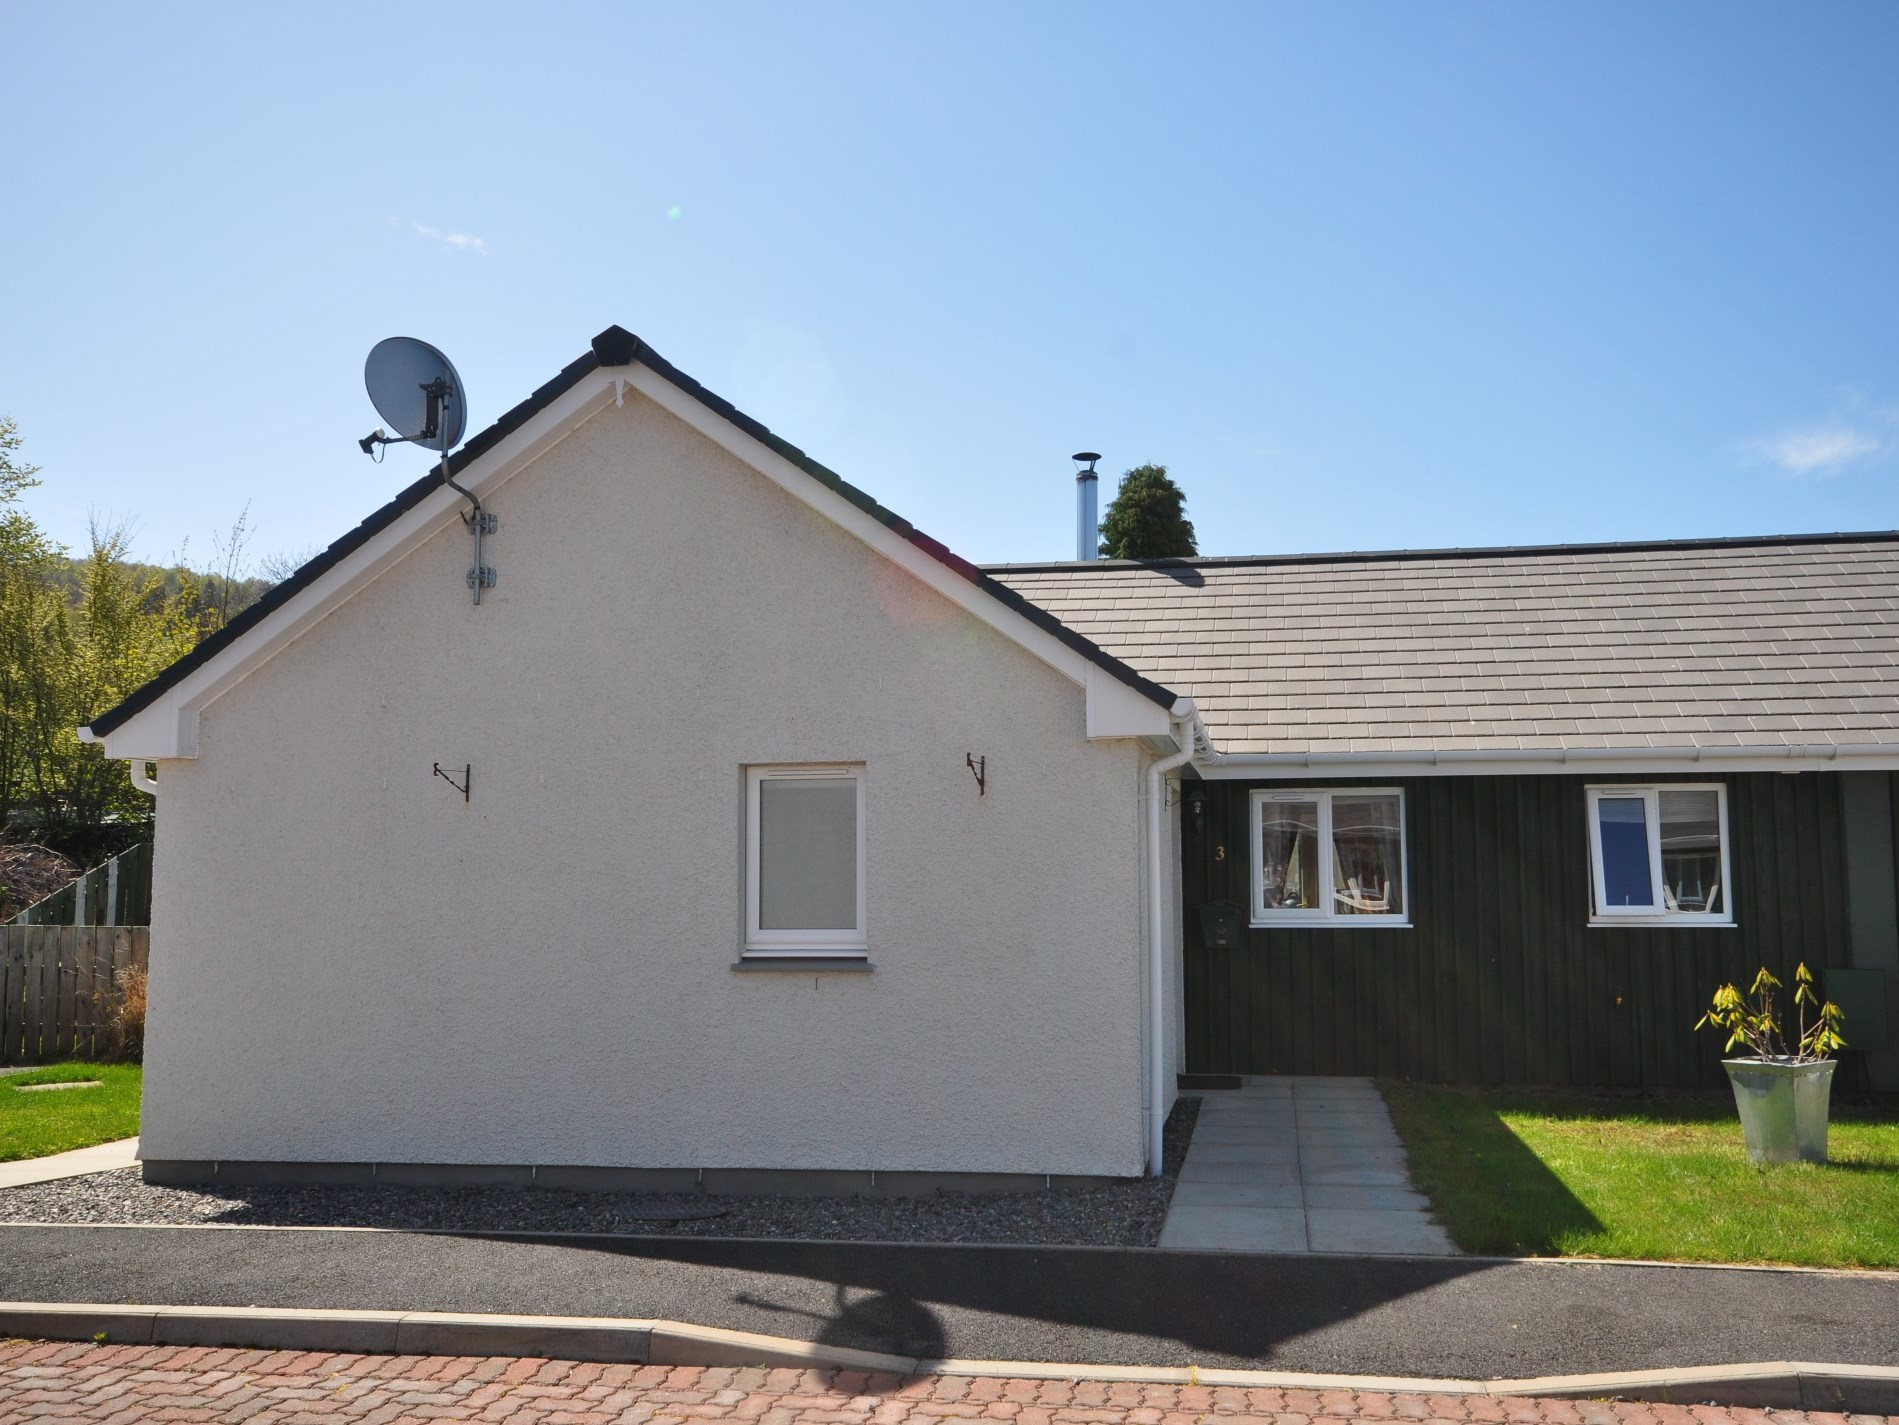 2 Bedroom Cottage in Inverness, Inverness, Loch Ness & Nairn, Highlands